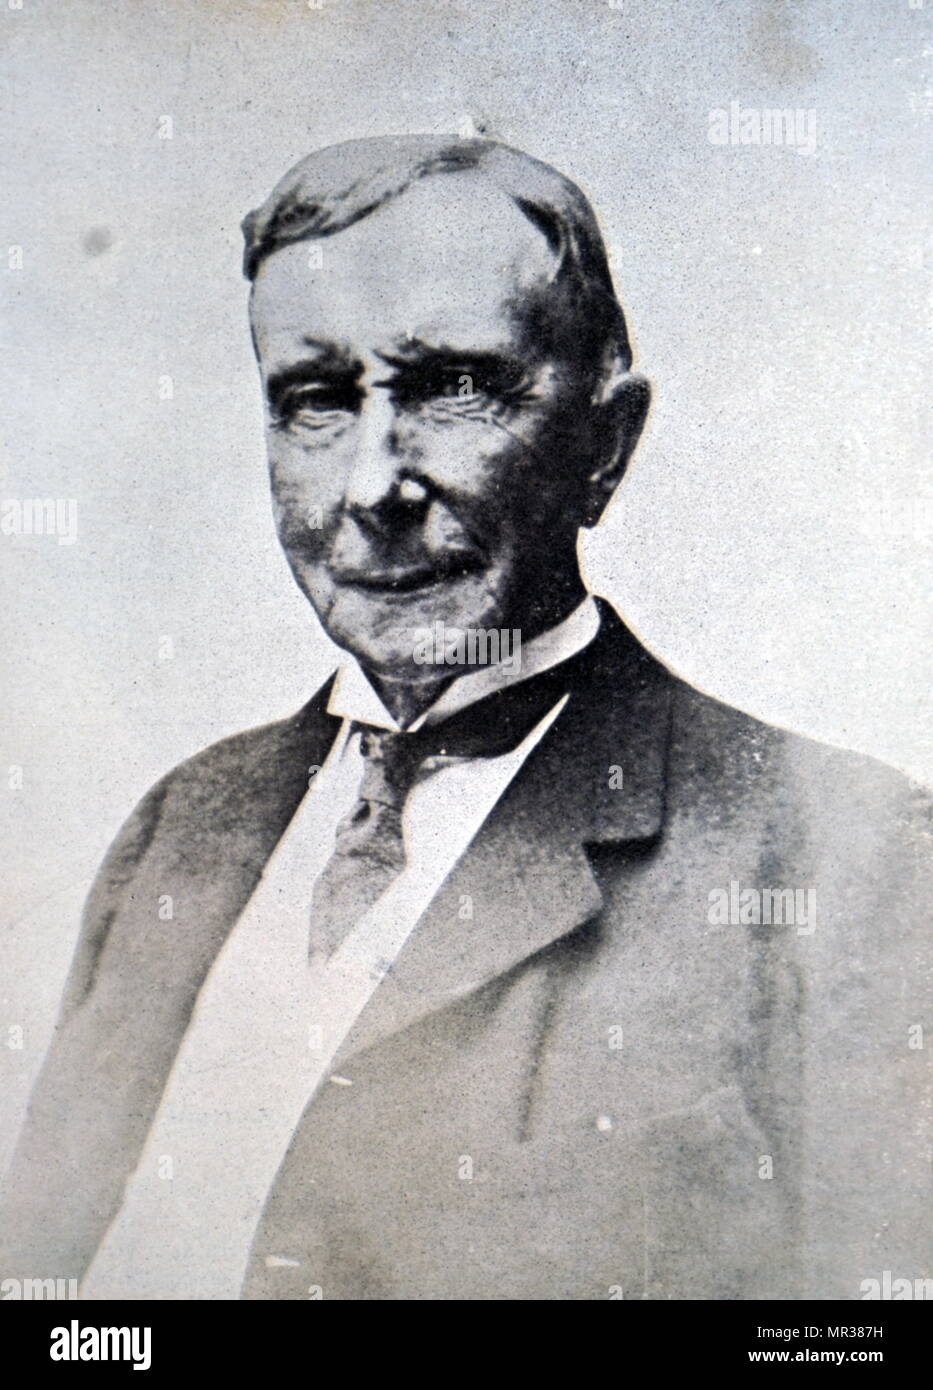 Photograph of John D. Rockefeller (1839-1937) an American oil industry business magnate and philanthropist. Dated 20th century - Stock Image